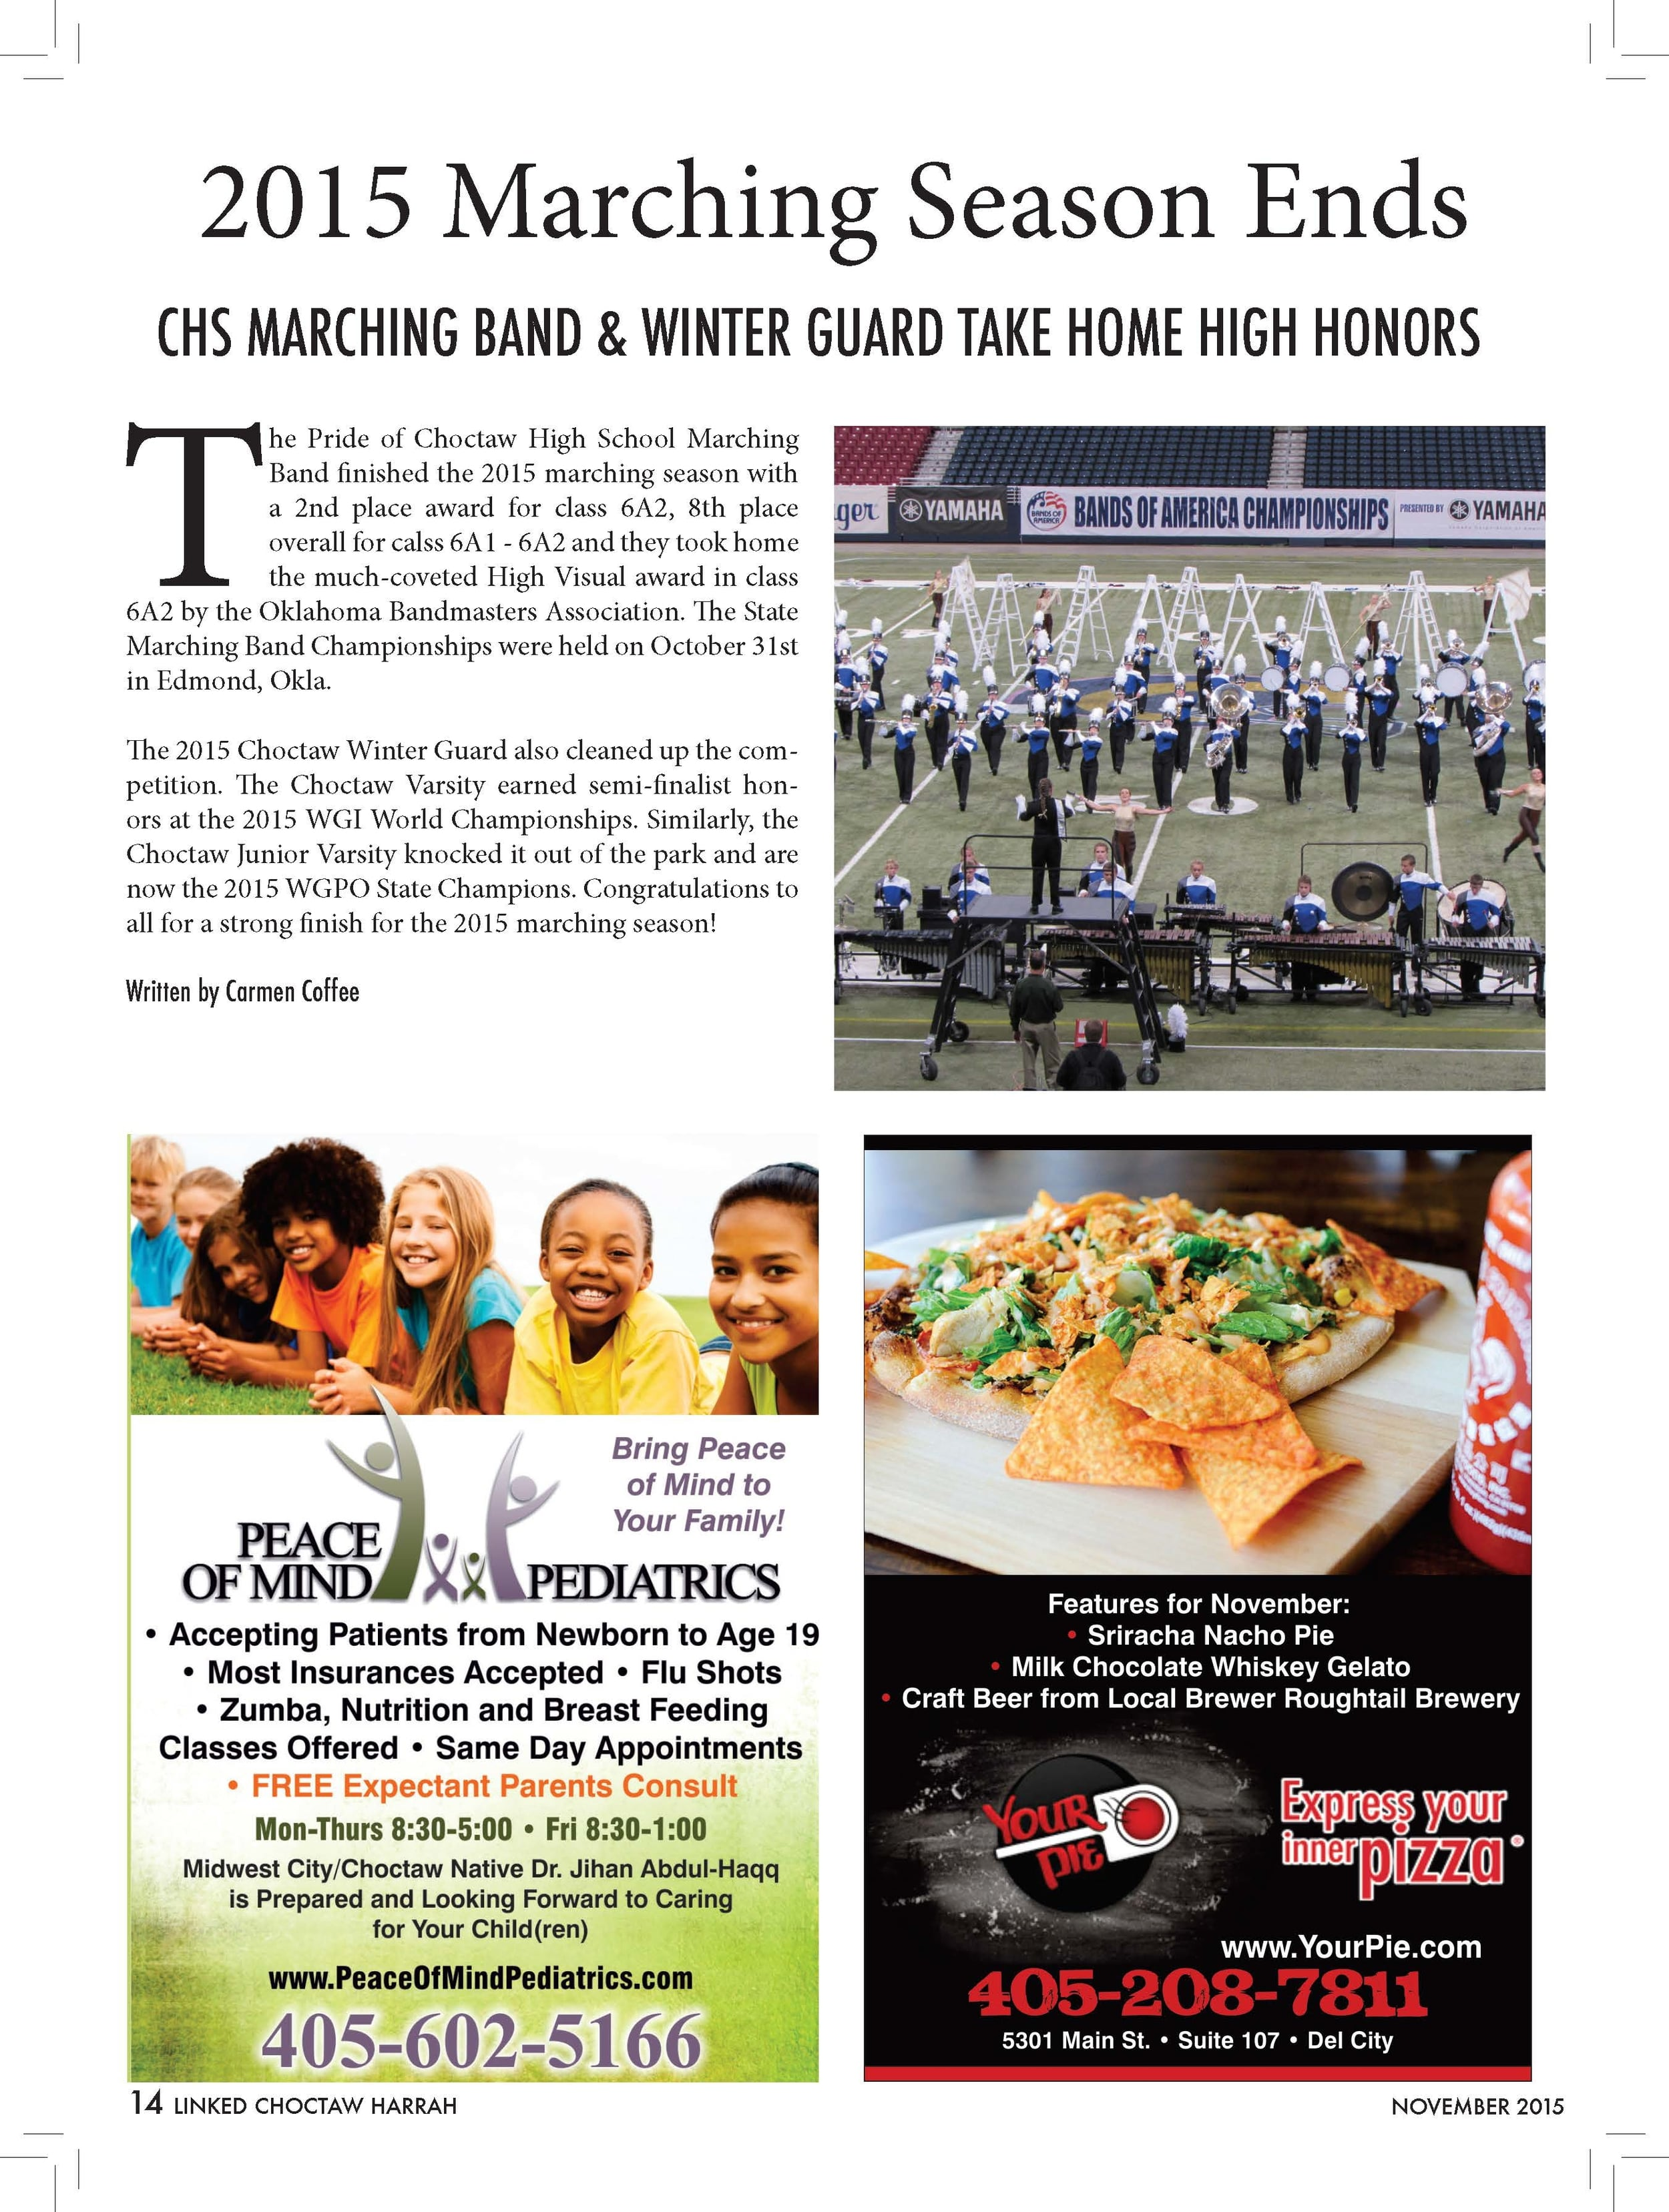 2015 Marching Season Ends  CHS MARCHING BAND & WINTER GUARD TAKE HOME HIGH HONORS  The Pride of Choctaw High School Marching  Band finished the 2015 marching season with  a 2nd place award for class 6A2, 8th place  overall for calss 6A1 - 6A2 and they took home  the much-coveted High Visual award in class  6A2 by the Oklahoma Bandmasters Association. The State  Marching Band Championships were held on October 31st  in Edmond, Okla.  The 2015 Choctaw Winter Guard also cleaned up the competition.  The Choctaw Varsity earned semi-finalist honors  at the 2015 WGI World Championships. Similarly, the  Choctaw Junior Varsity knocked it out of the park and are  now the 2015 WGPO State Champions. Congratulations to  all for a strong finish for the 2015 marching season!  Written by Carmen Coffee